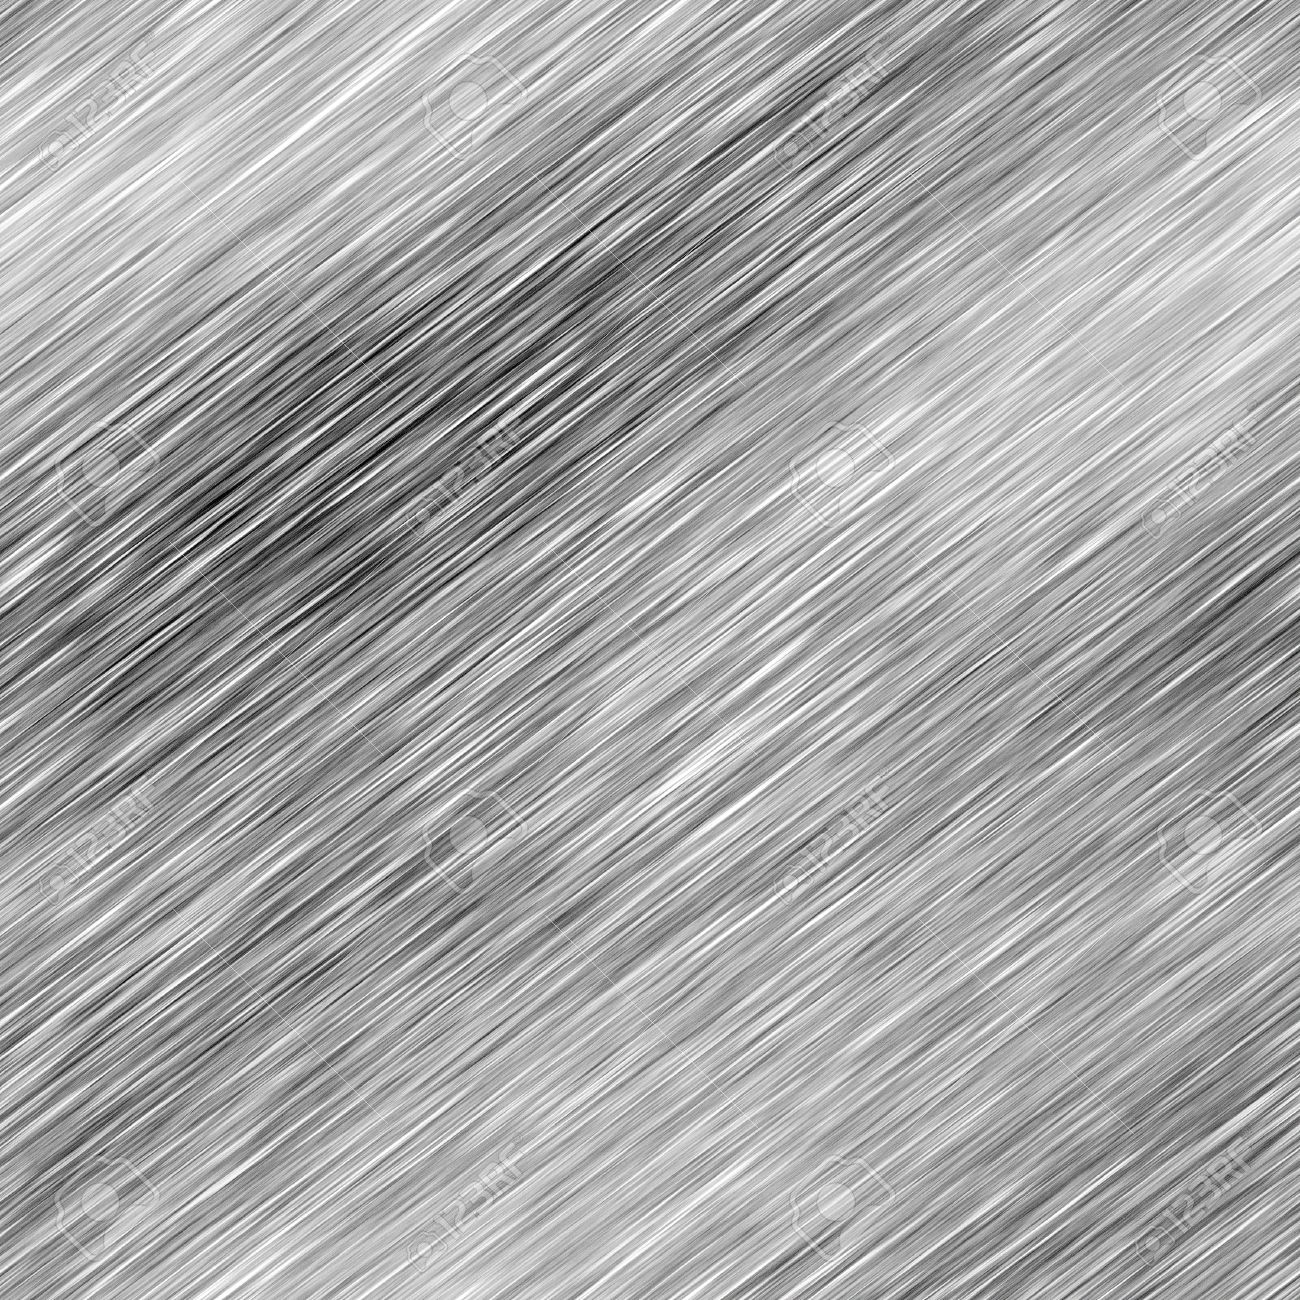 brushed metal texture stainless steel texture seamless background